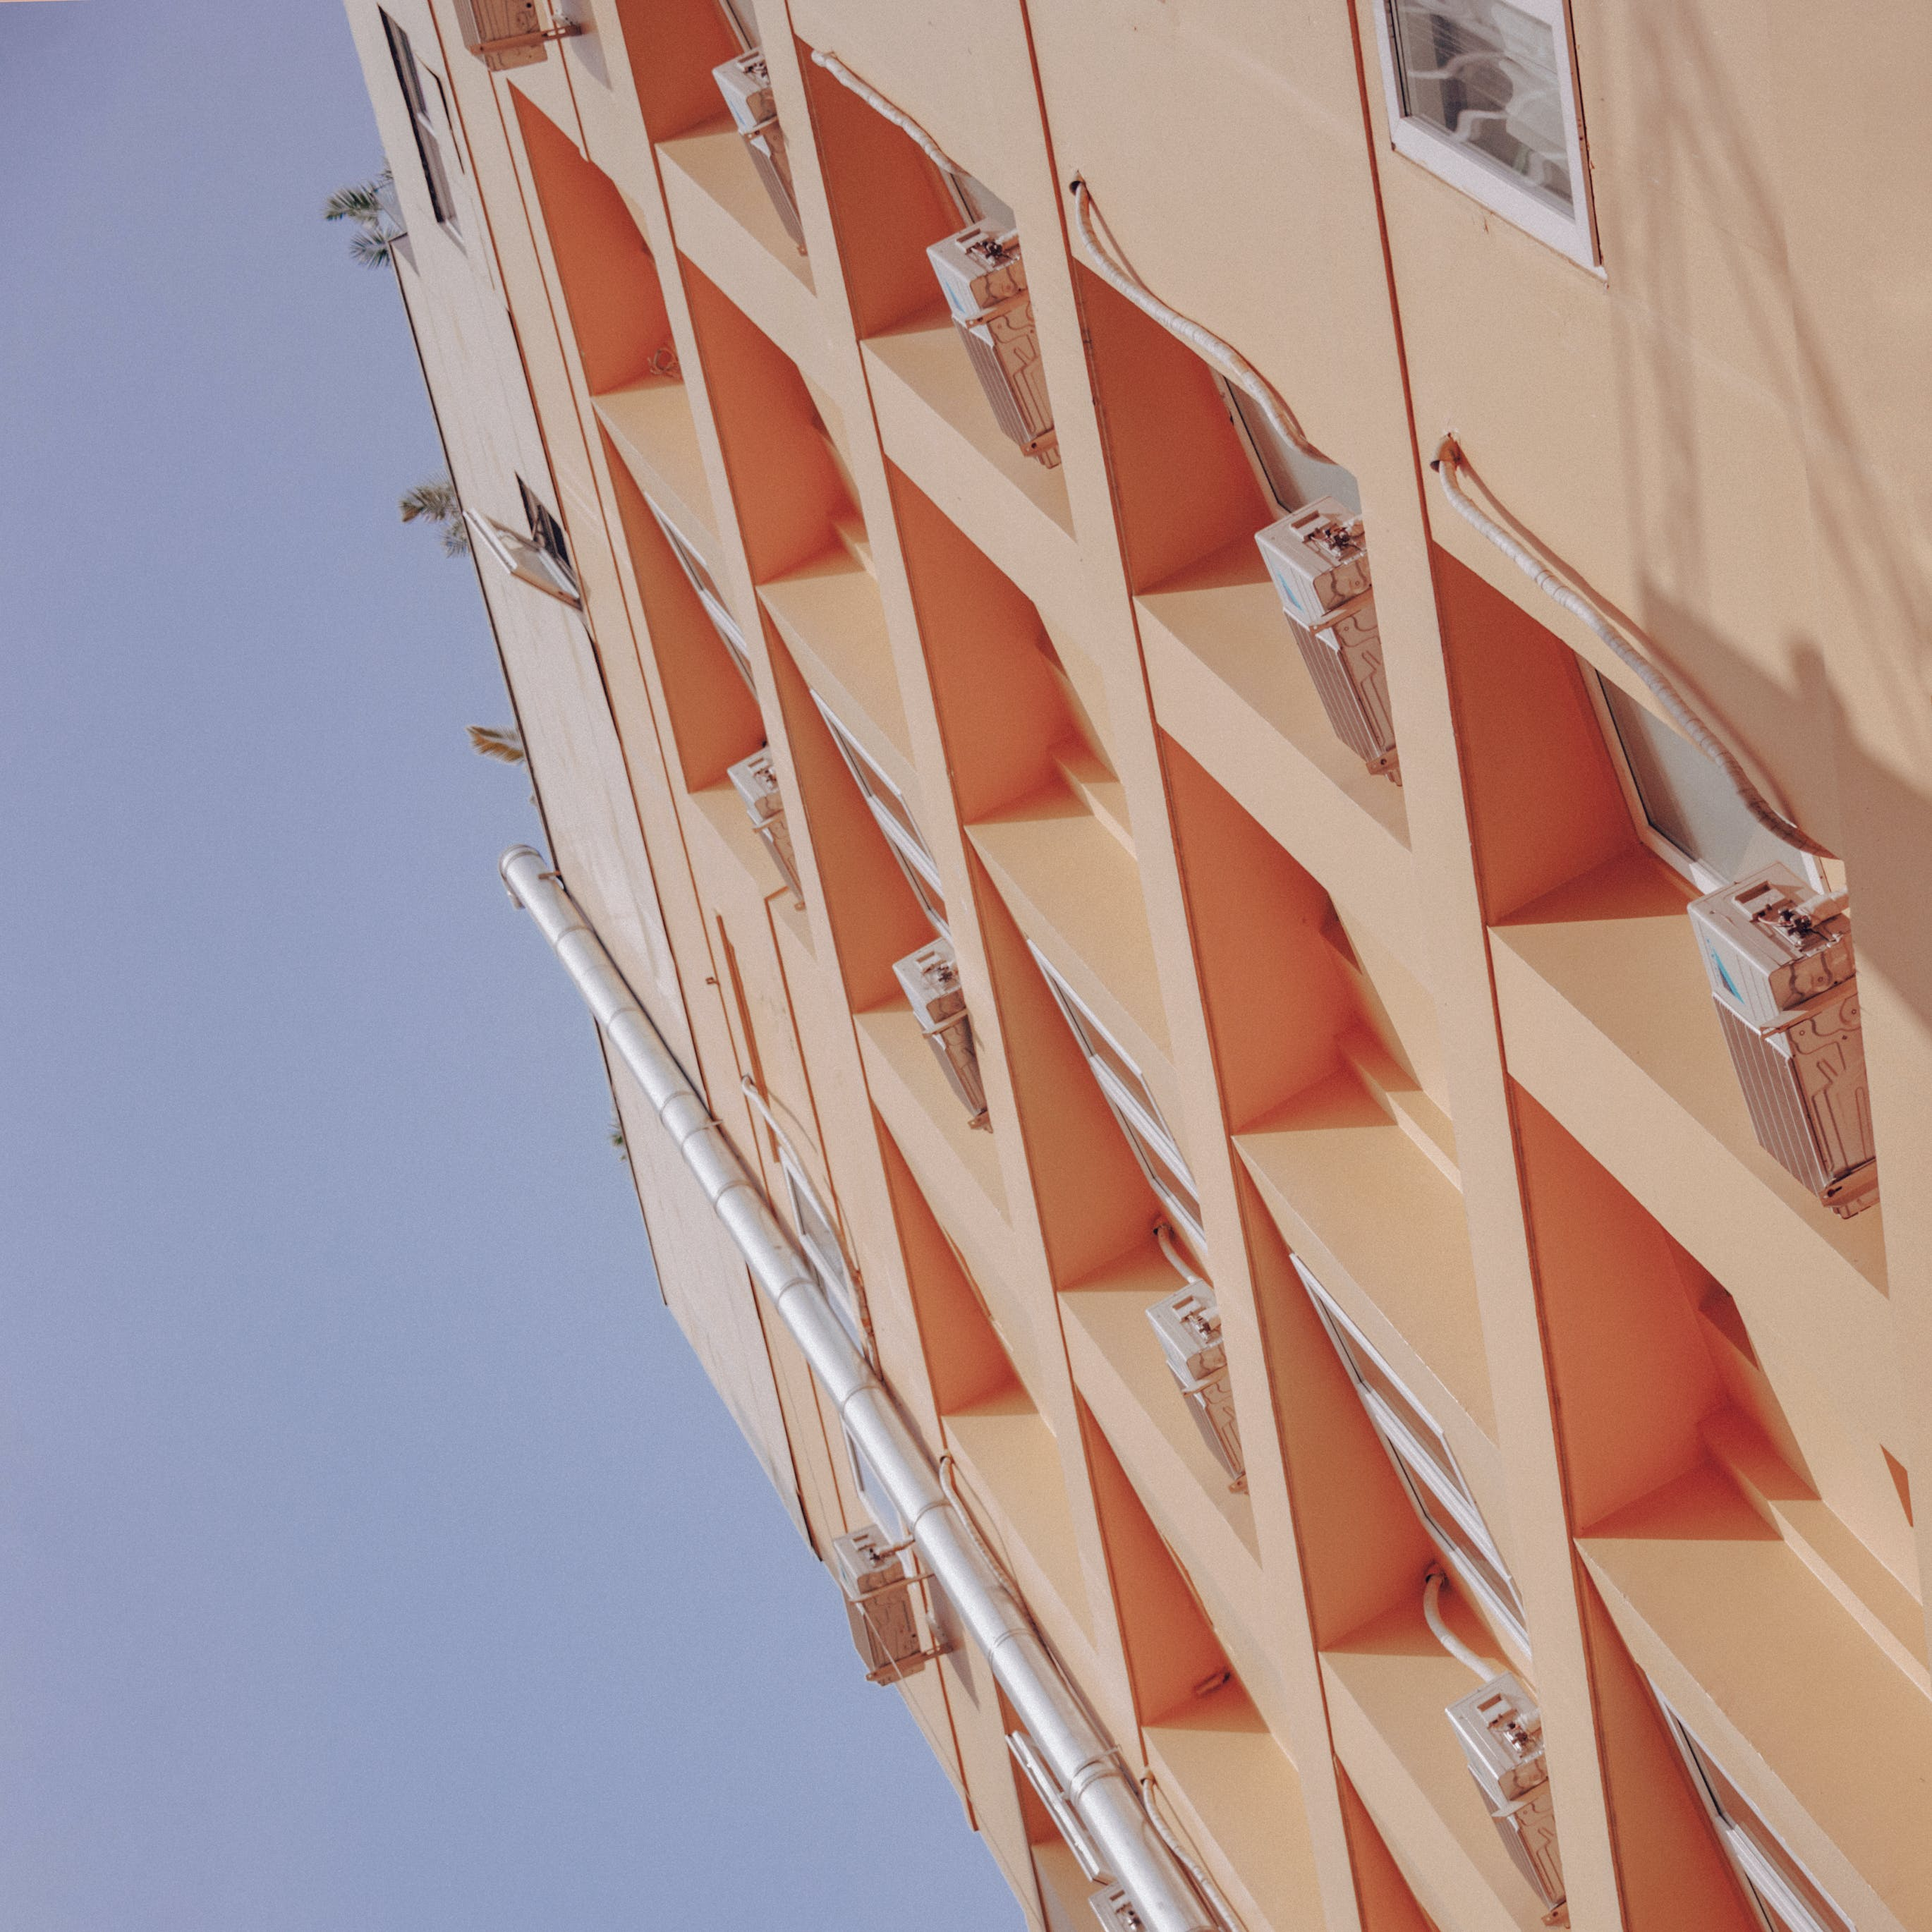 Low Angle Photography of a High-rise Building